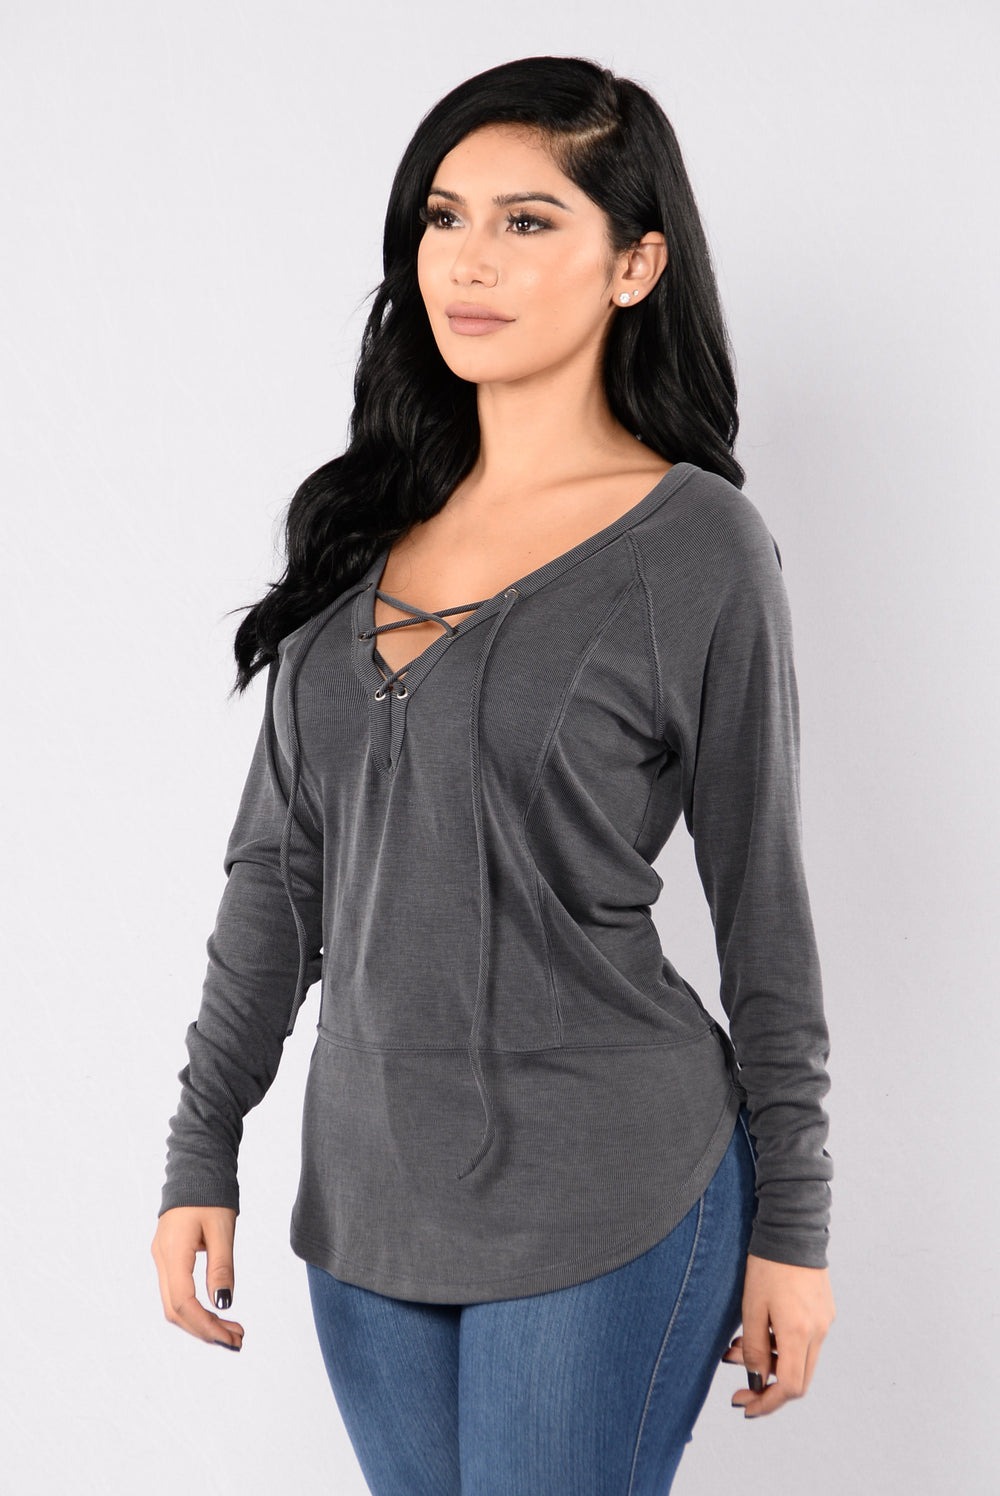 All Laced Up Top - Charcoal